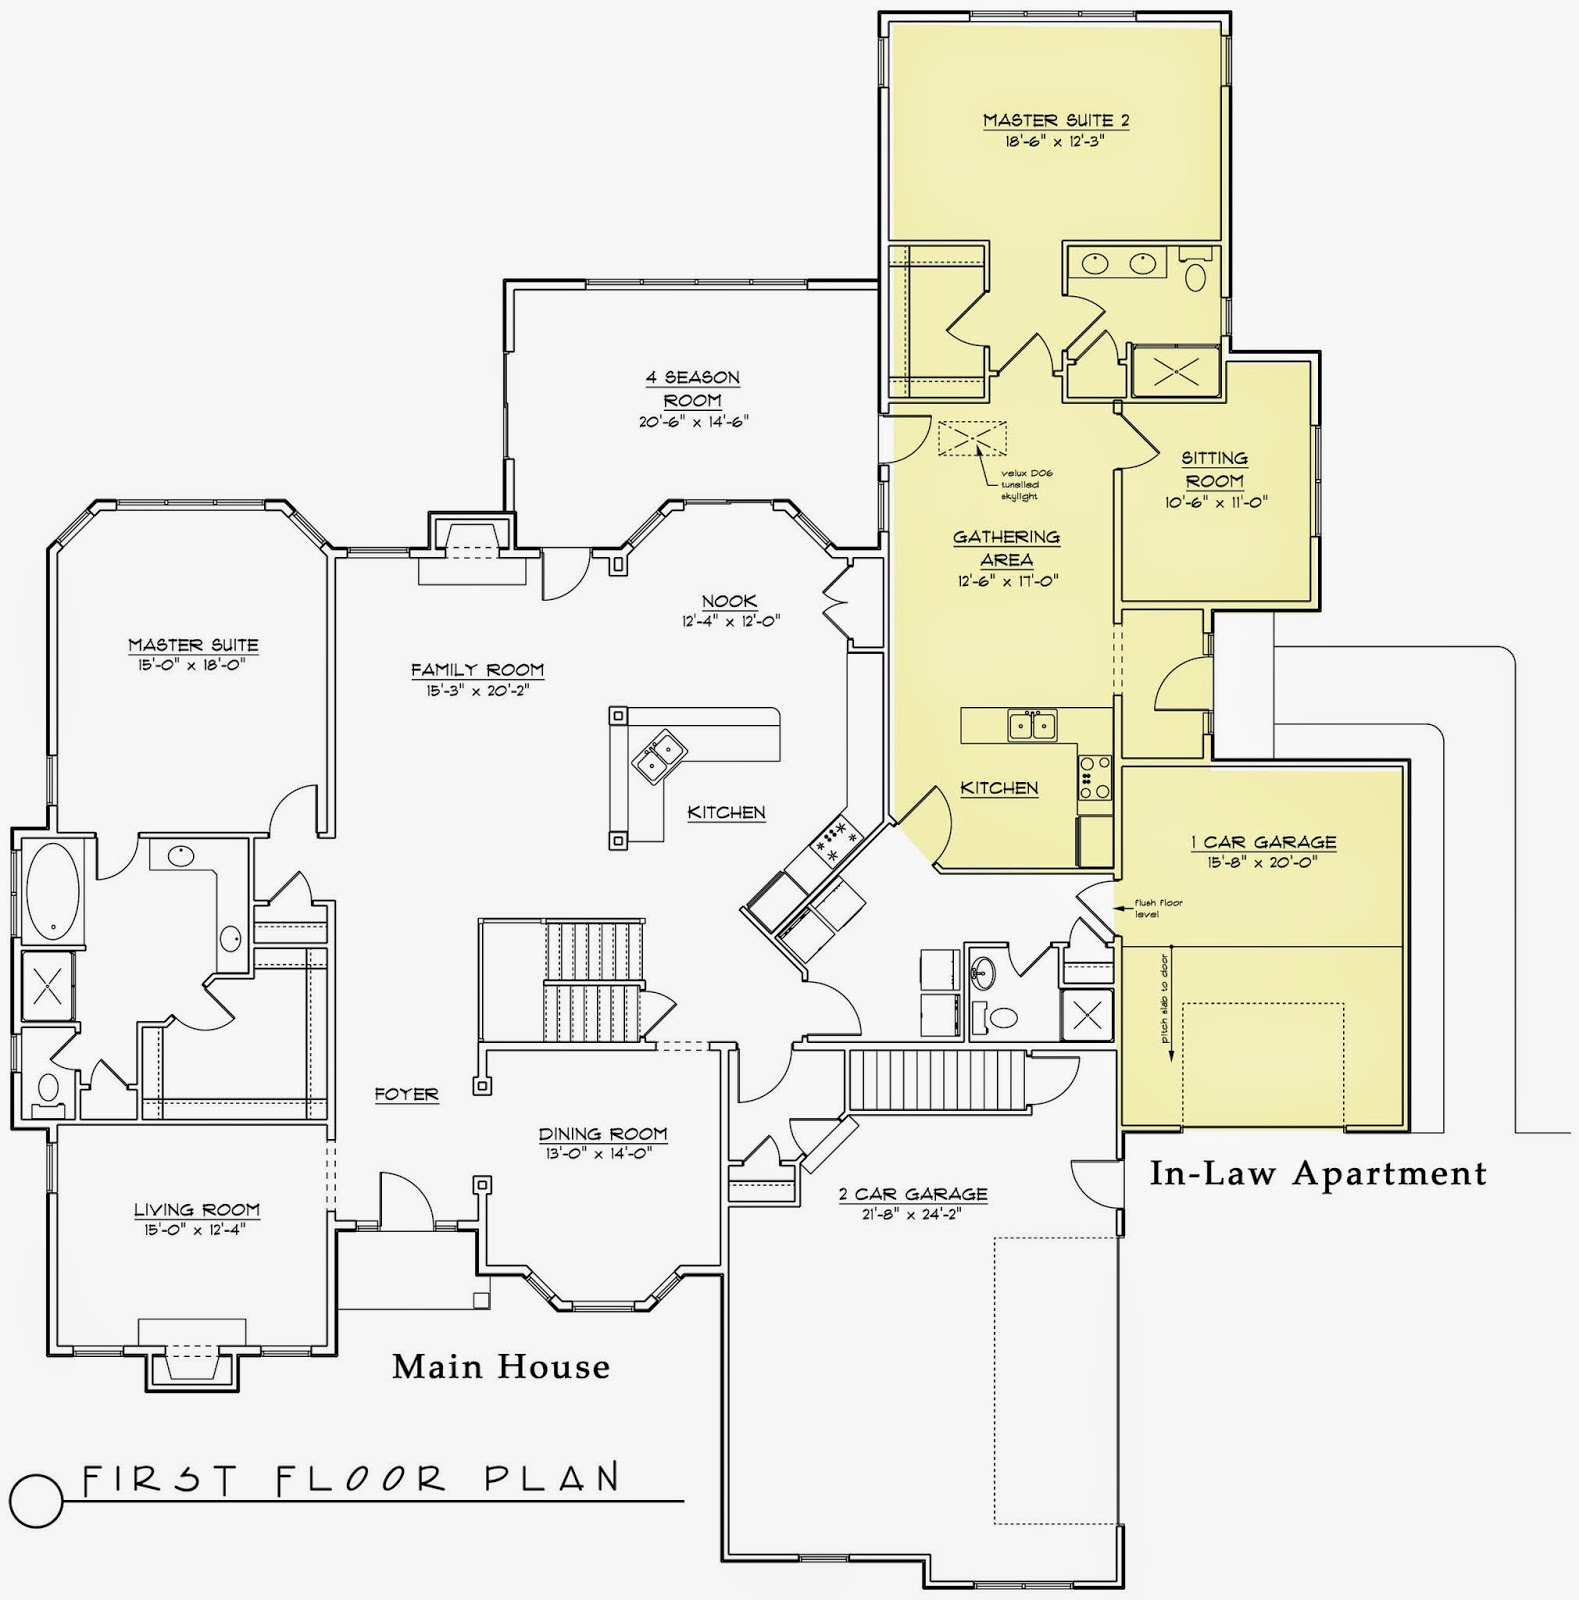 2 story apartment floor plans joy studio design gallery for One story apartments